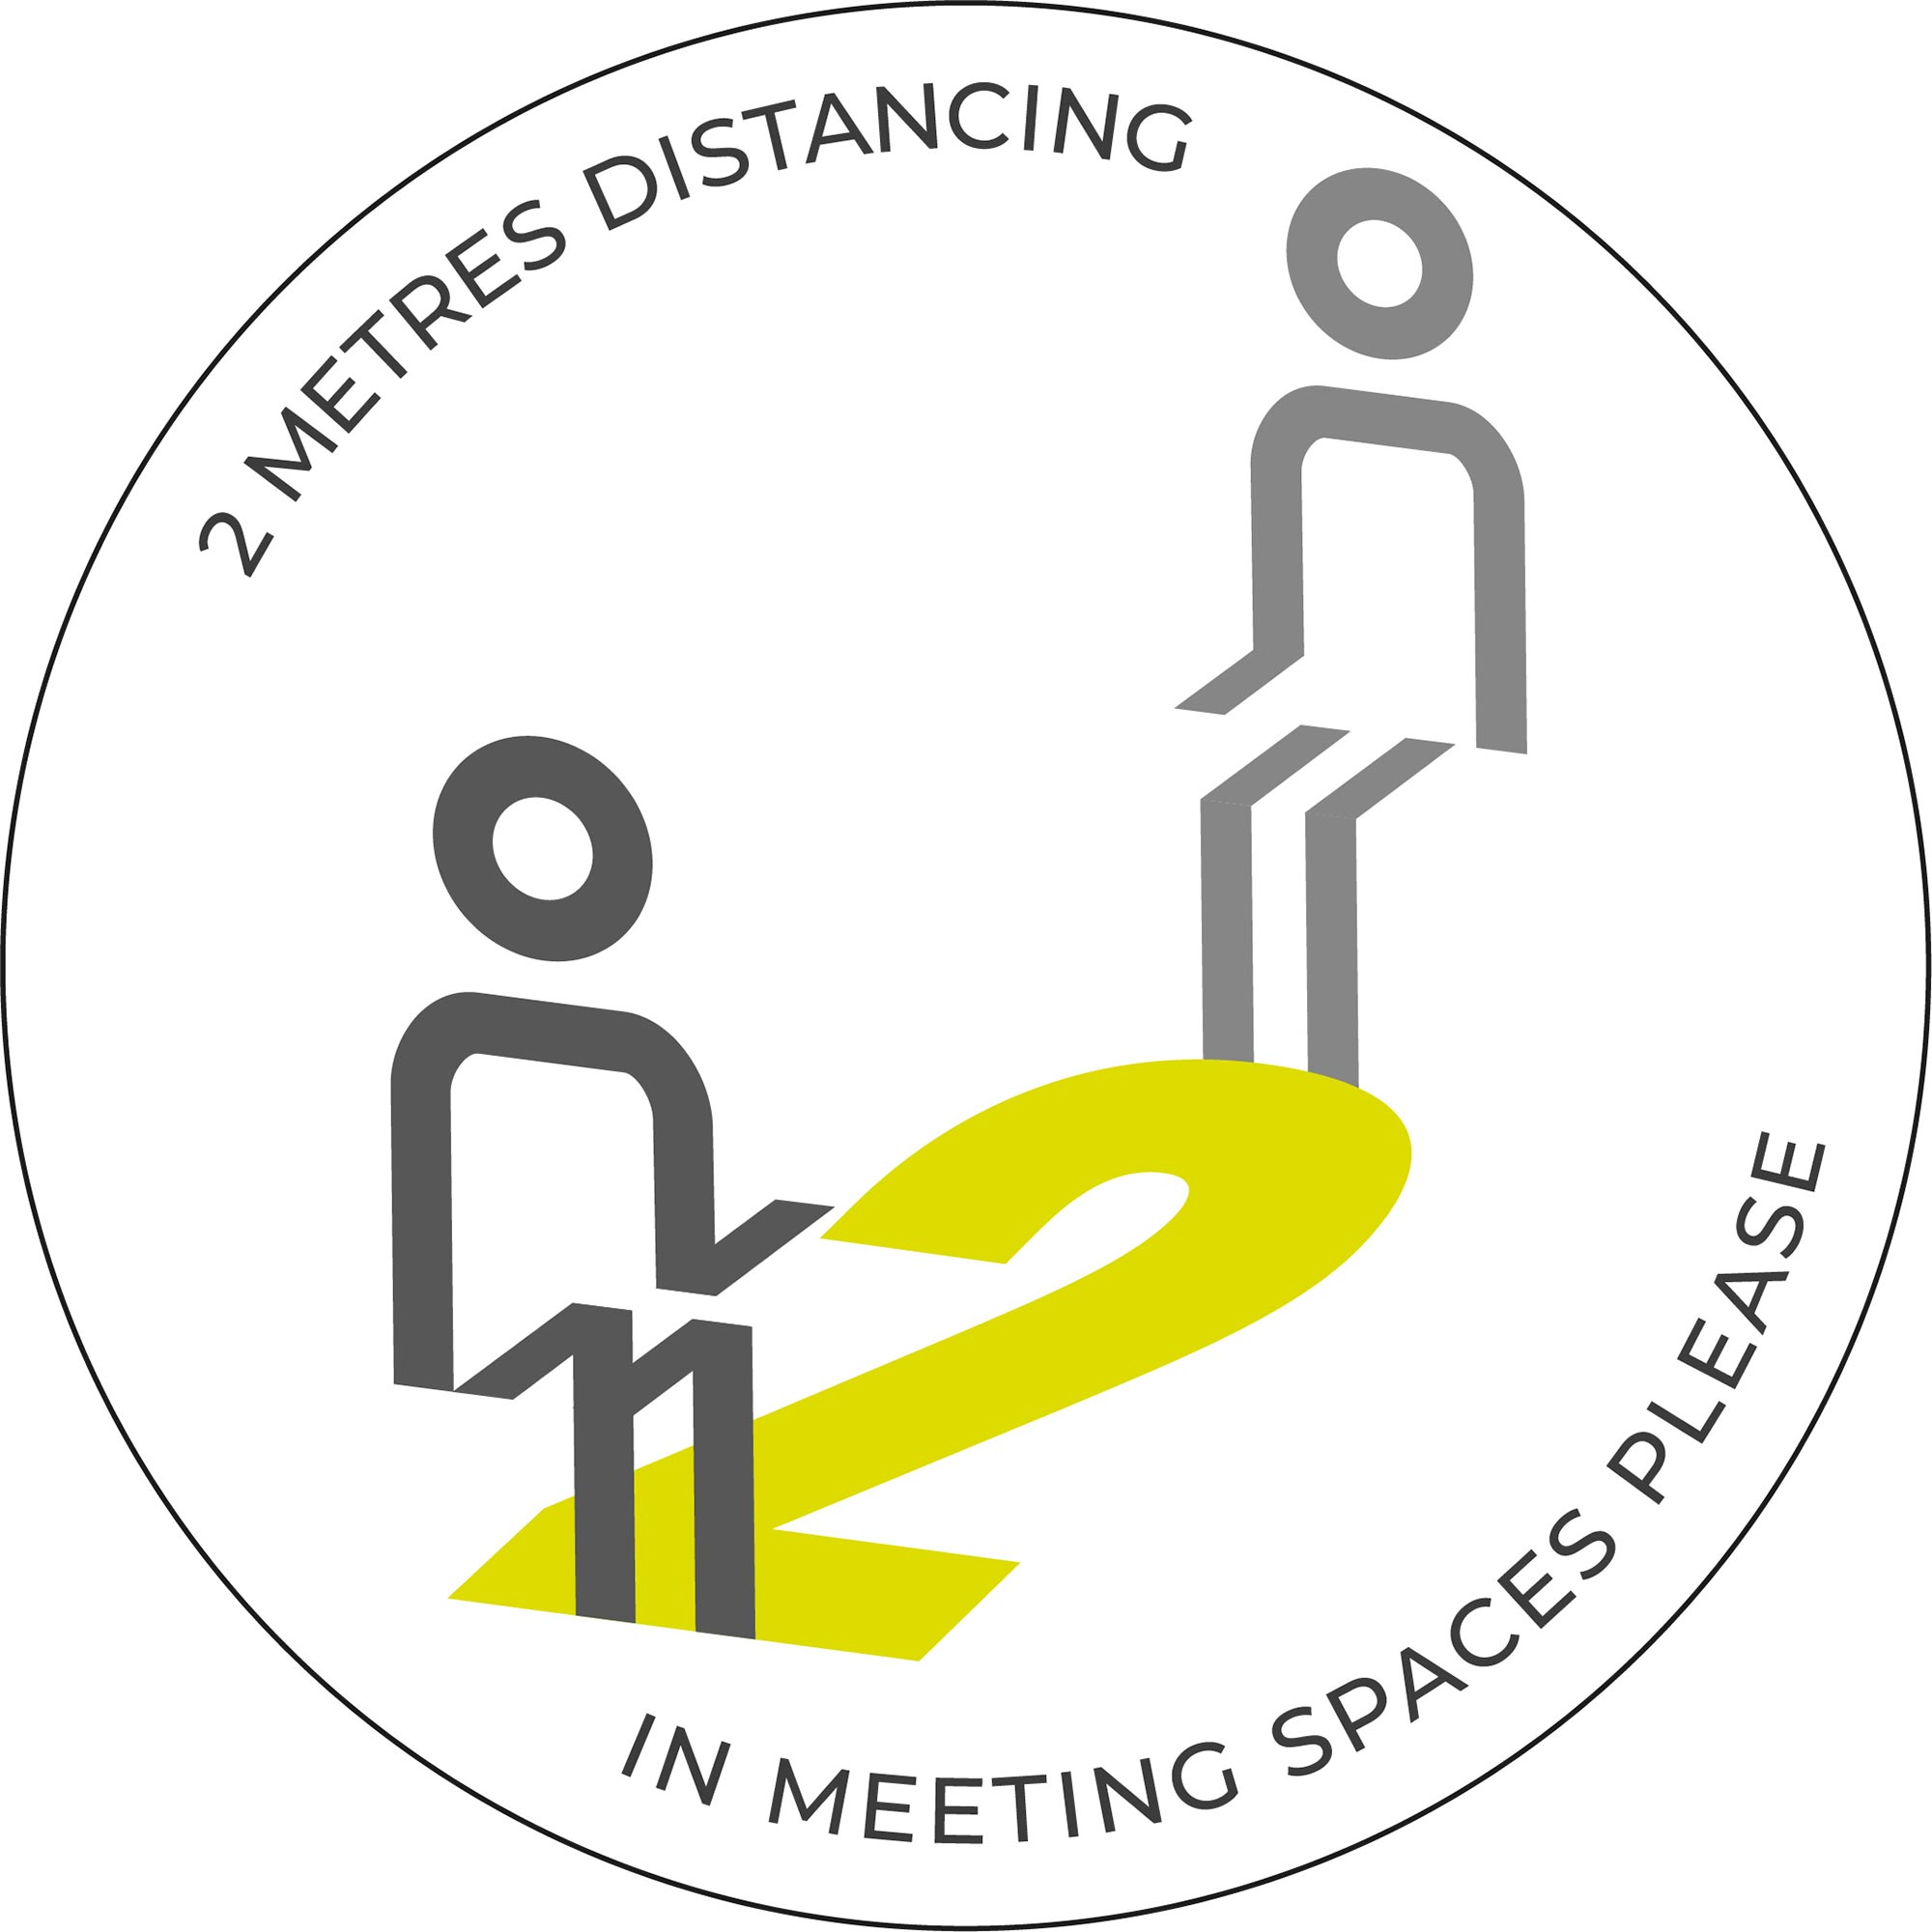 Meeting Spaces Distancing - White sticker